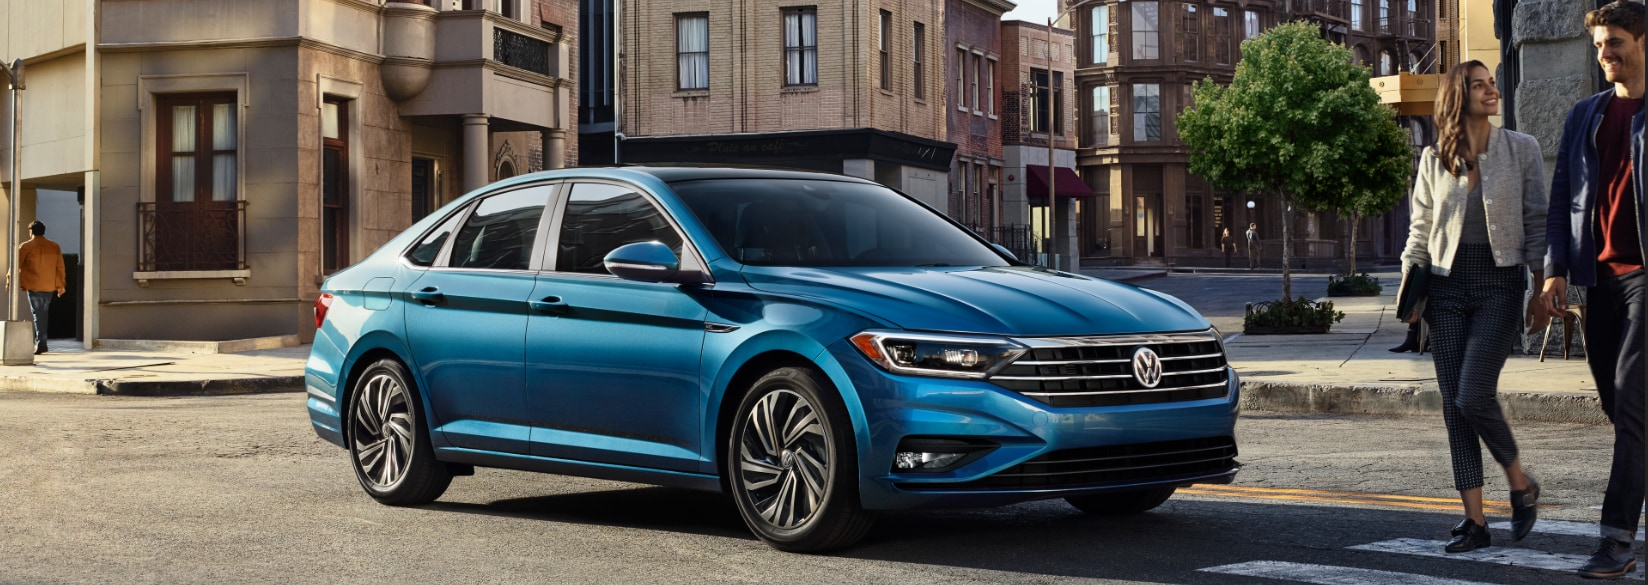 2019 VW Jetta - Long Island VW Dealer